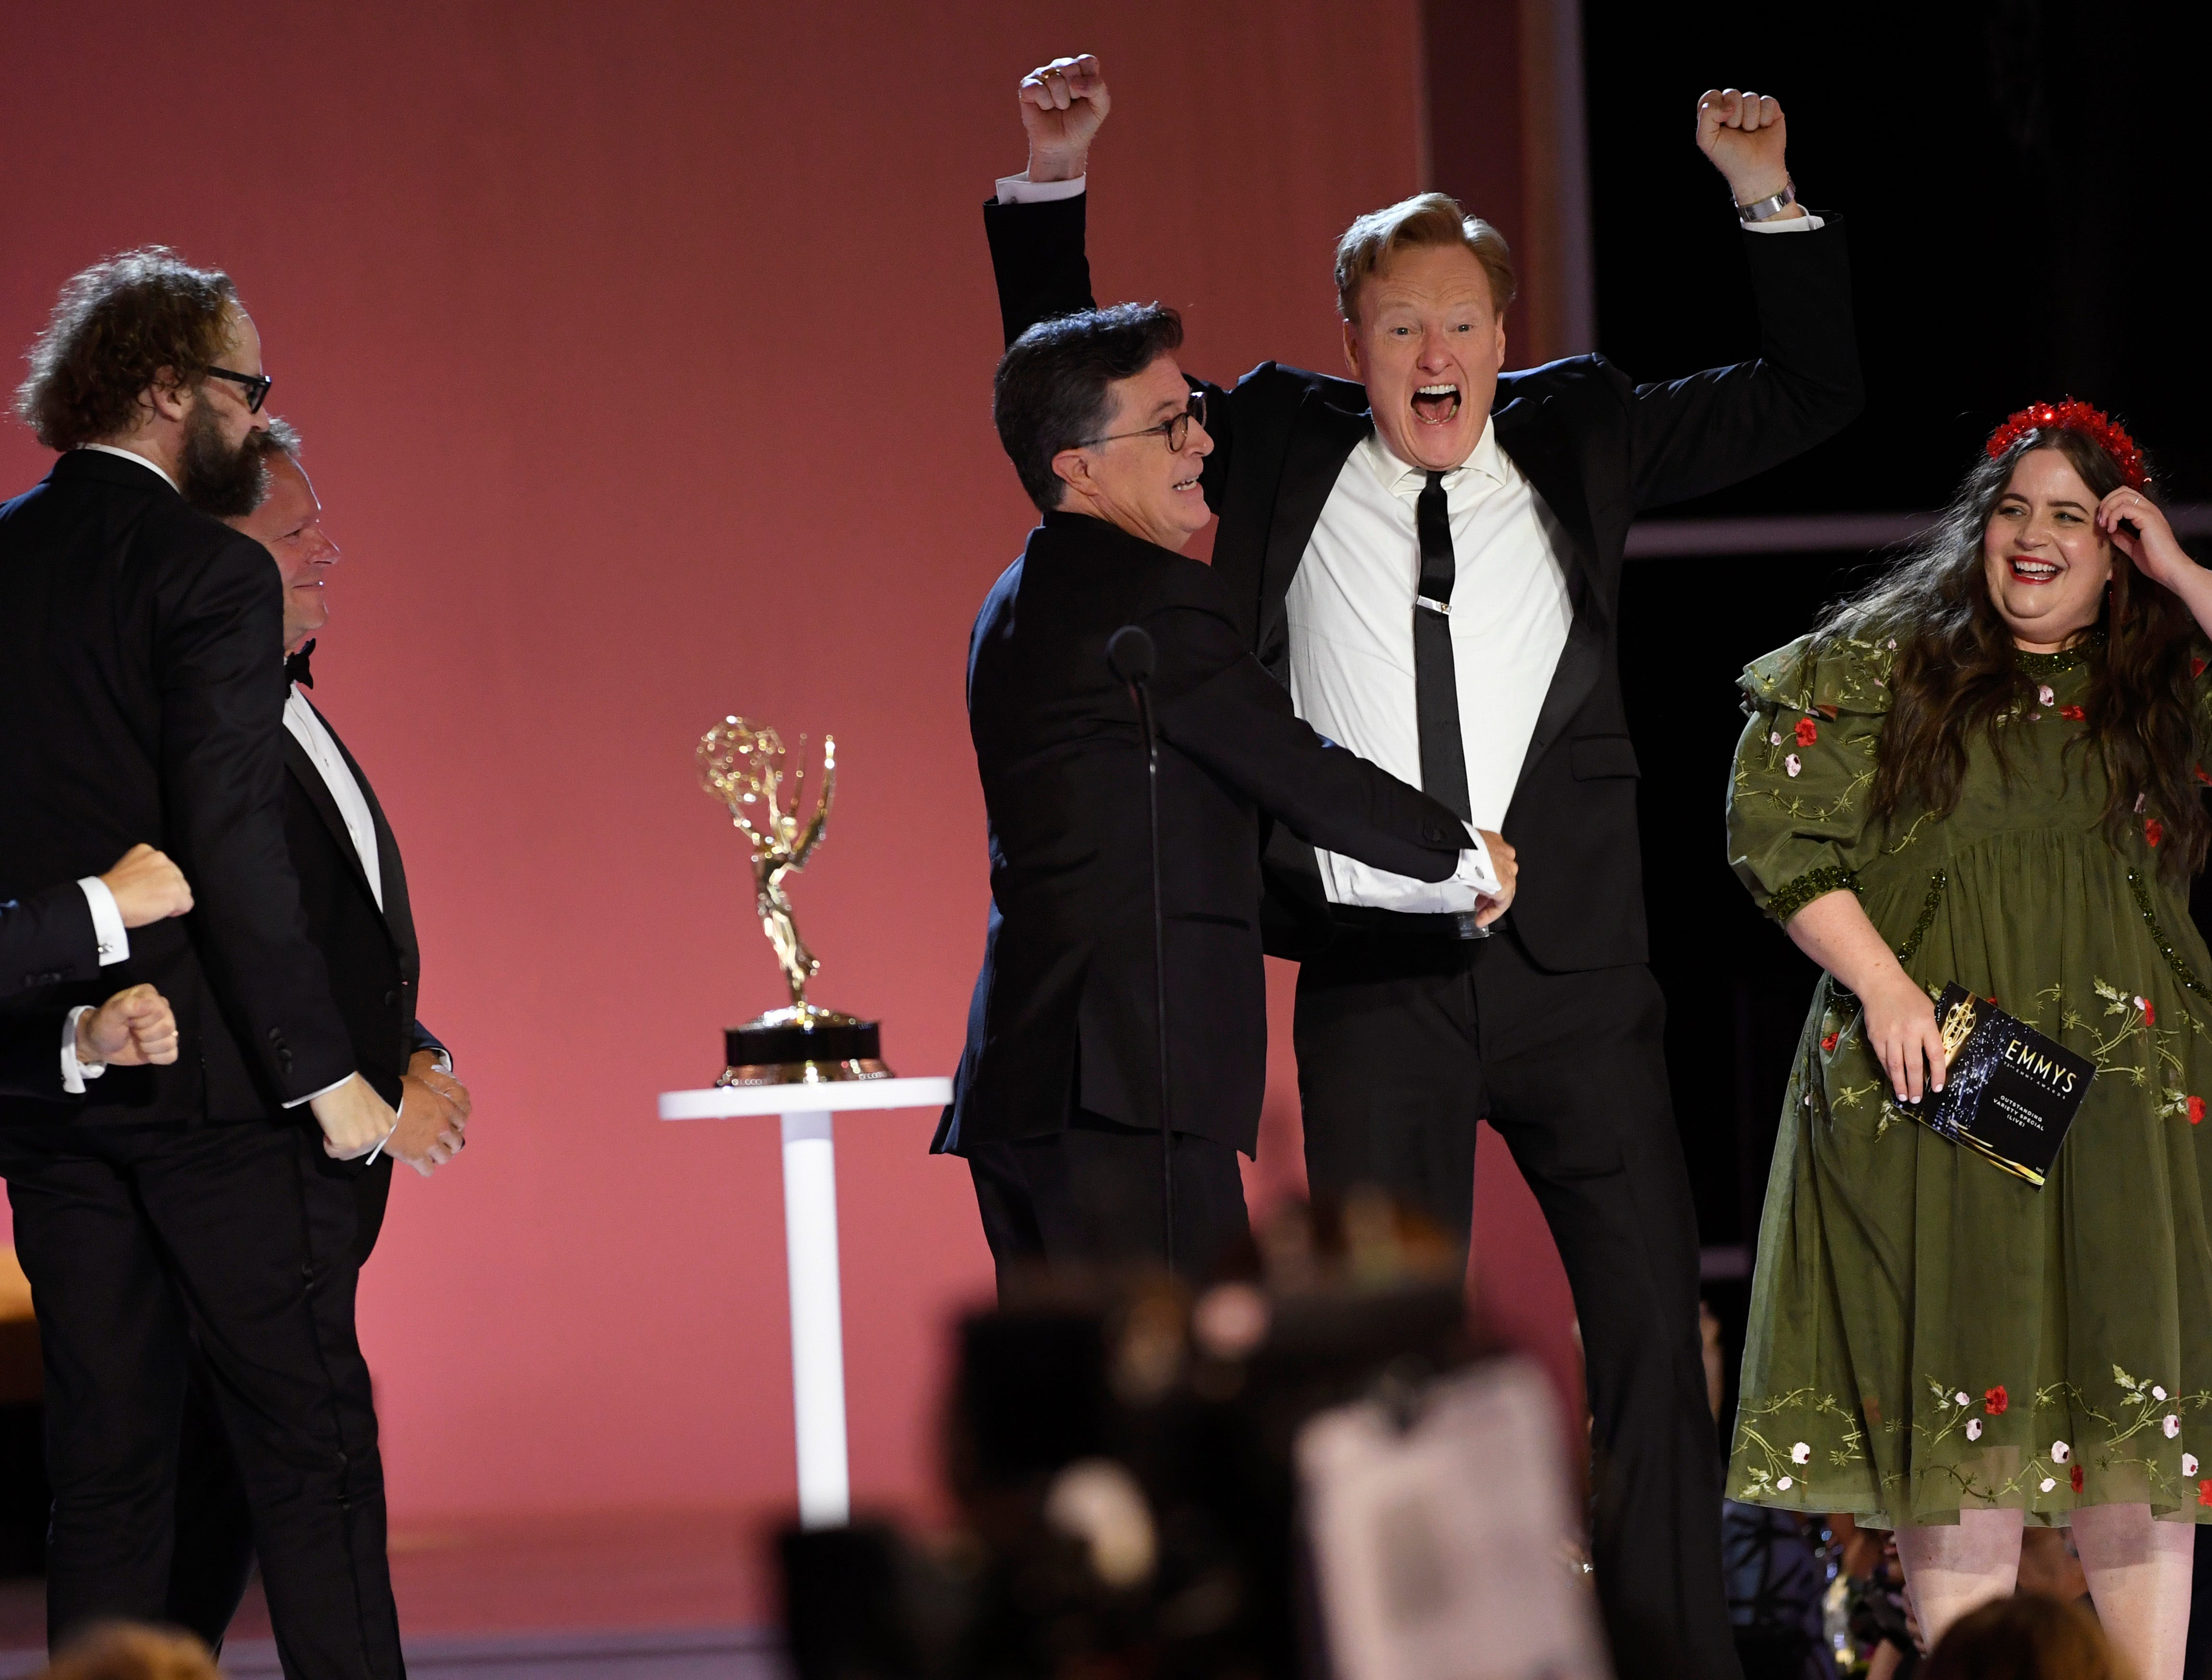 Stephen Colbert invited Conan O Brien to crash Emmy s stage, then fired him: Backstage at Emmy Awards